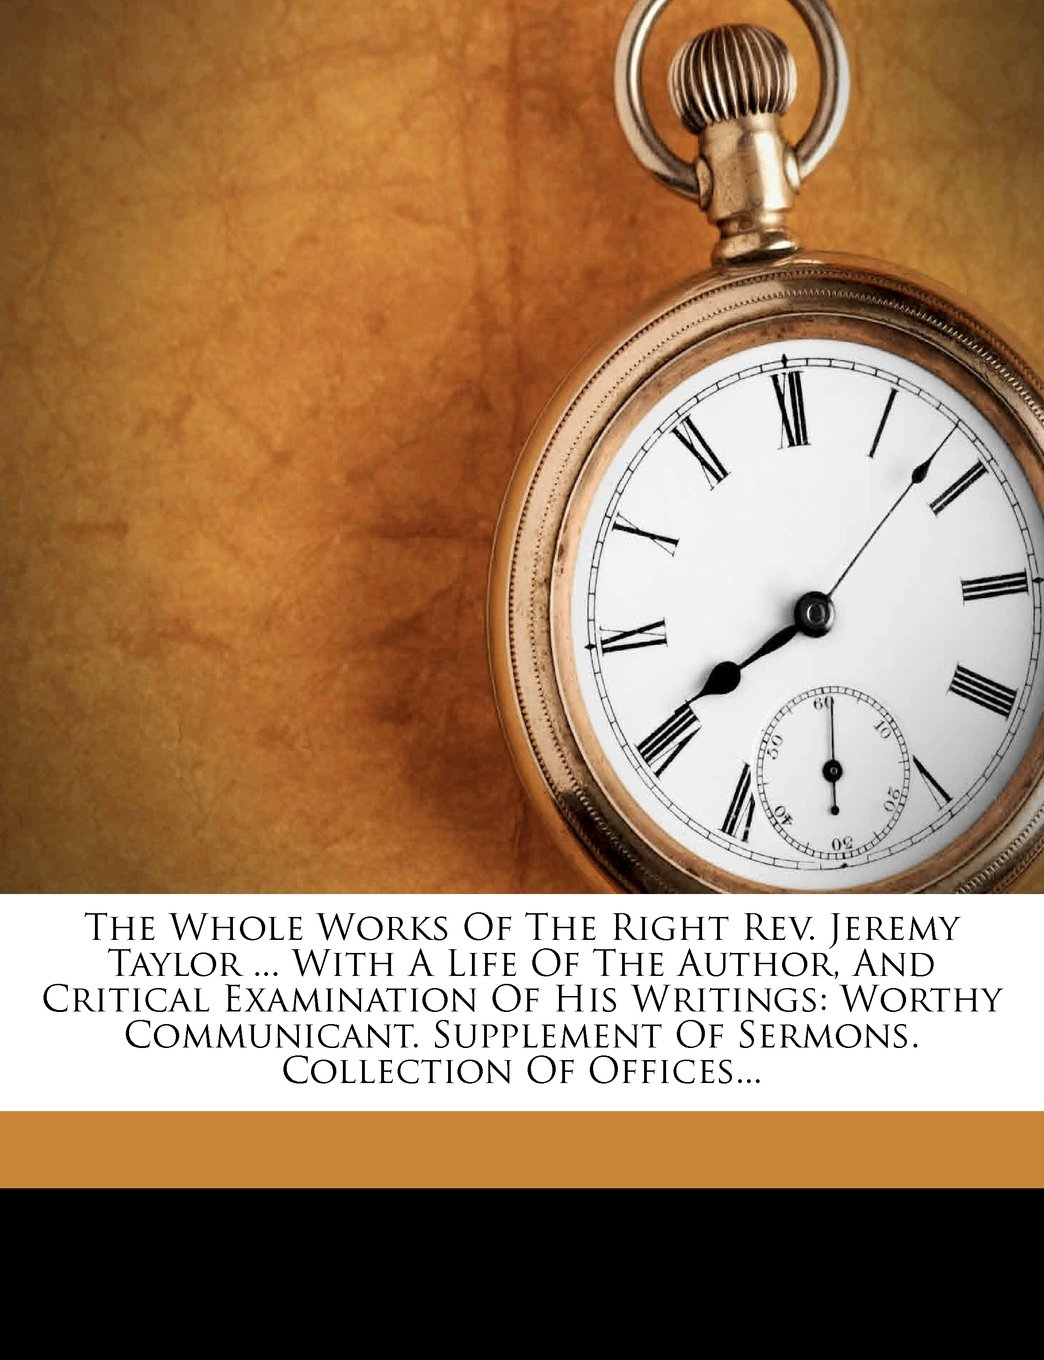 Download The Whole Works Of The Right Rev. Jeremy Taylor ... With A Life Of The Author, And Critical Examination Of His Writings: Worthy Communicant. Supplement Of Sermons. Collection Of Offices... ebook